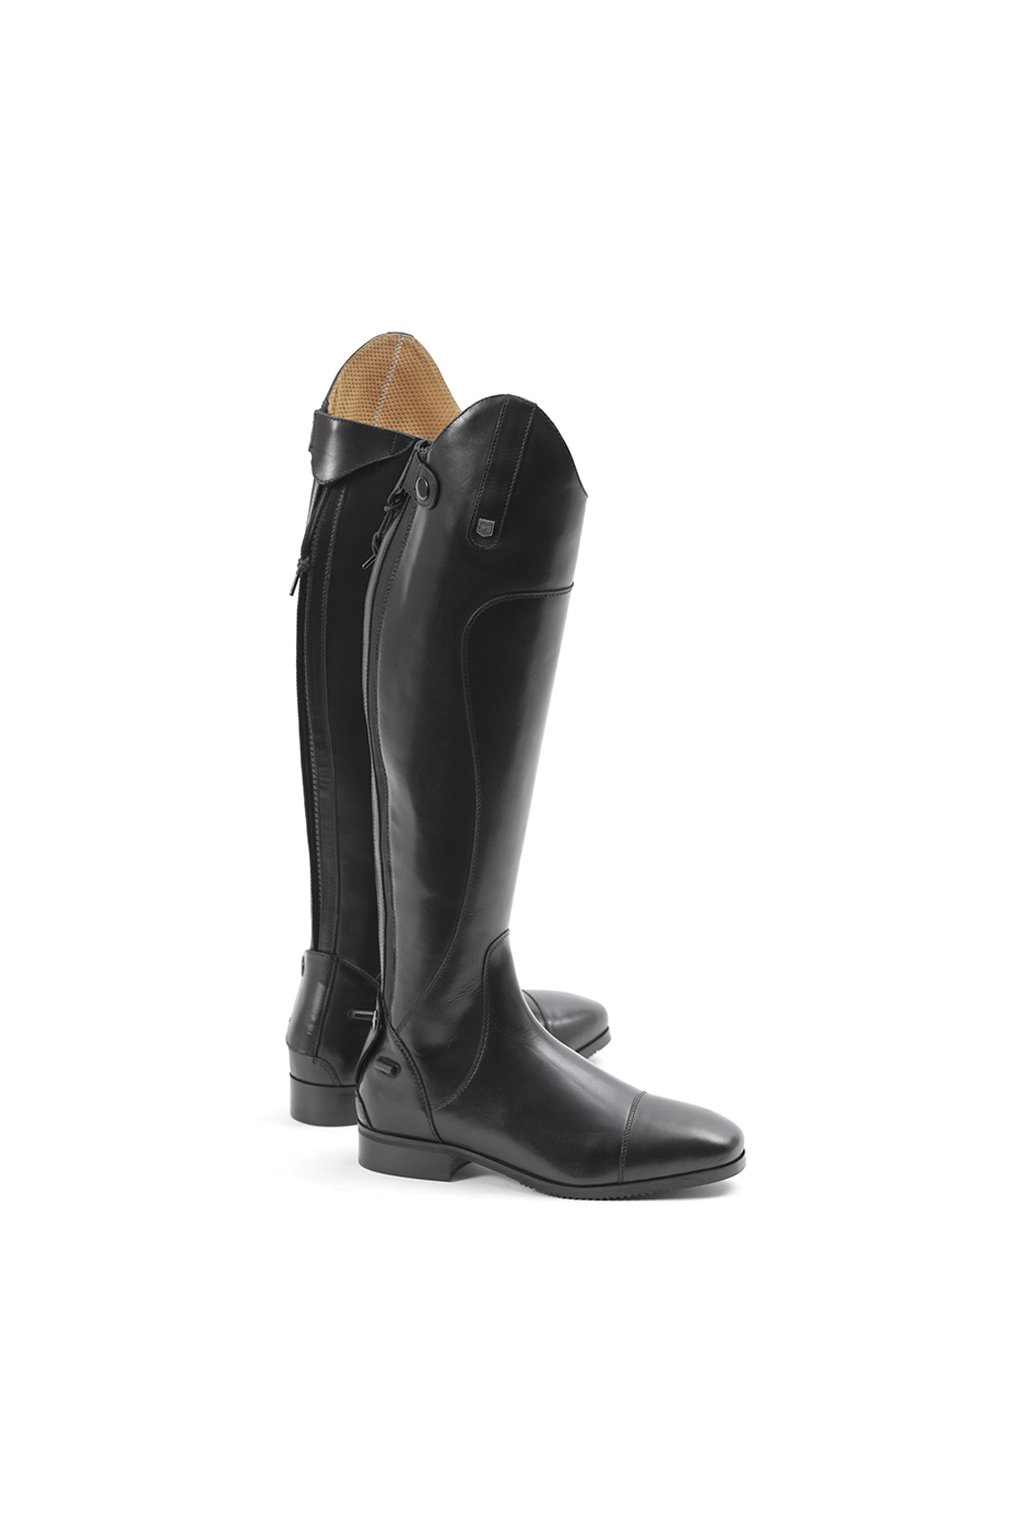 SS19 Mazziano Ladies Long Leather Riding Boot Black Main Image RGB 72 zoom